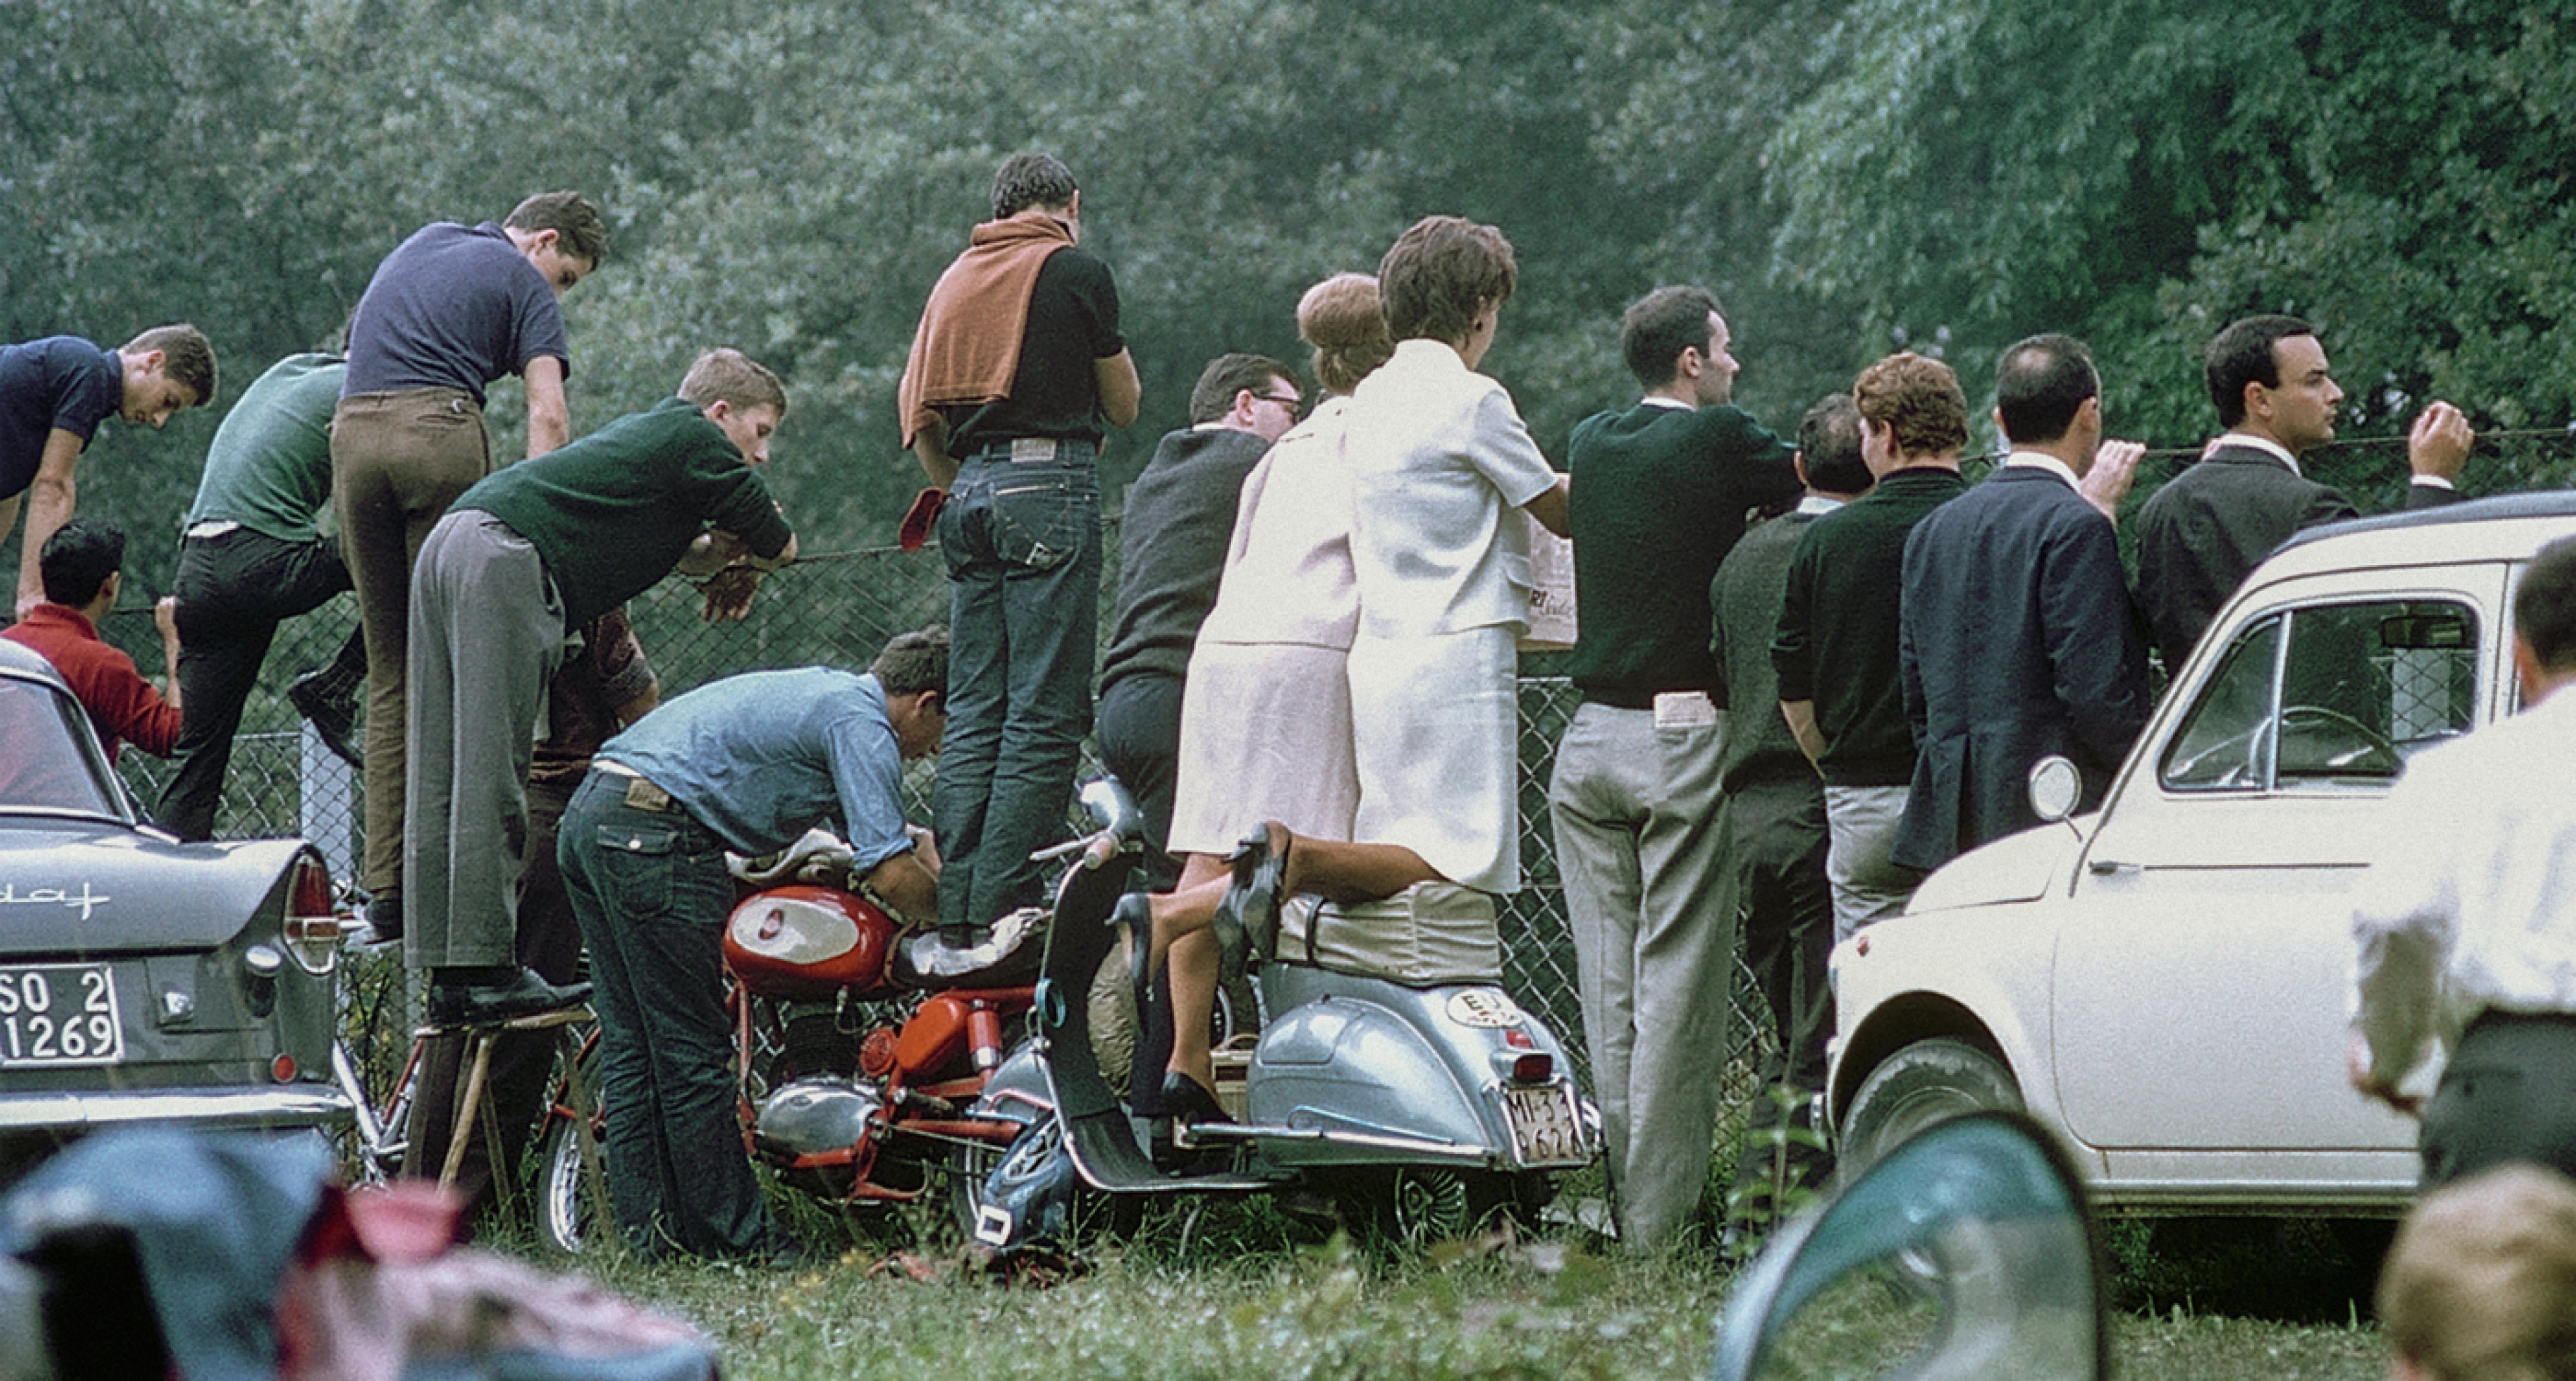 Spectators at the 1964 Gran Premio d'Italia in Monza.